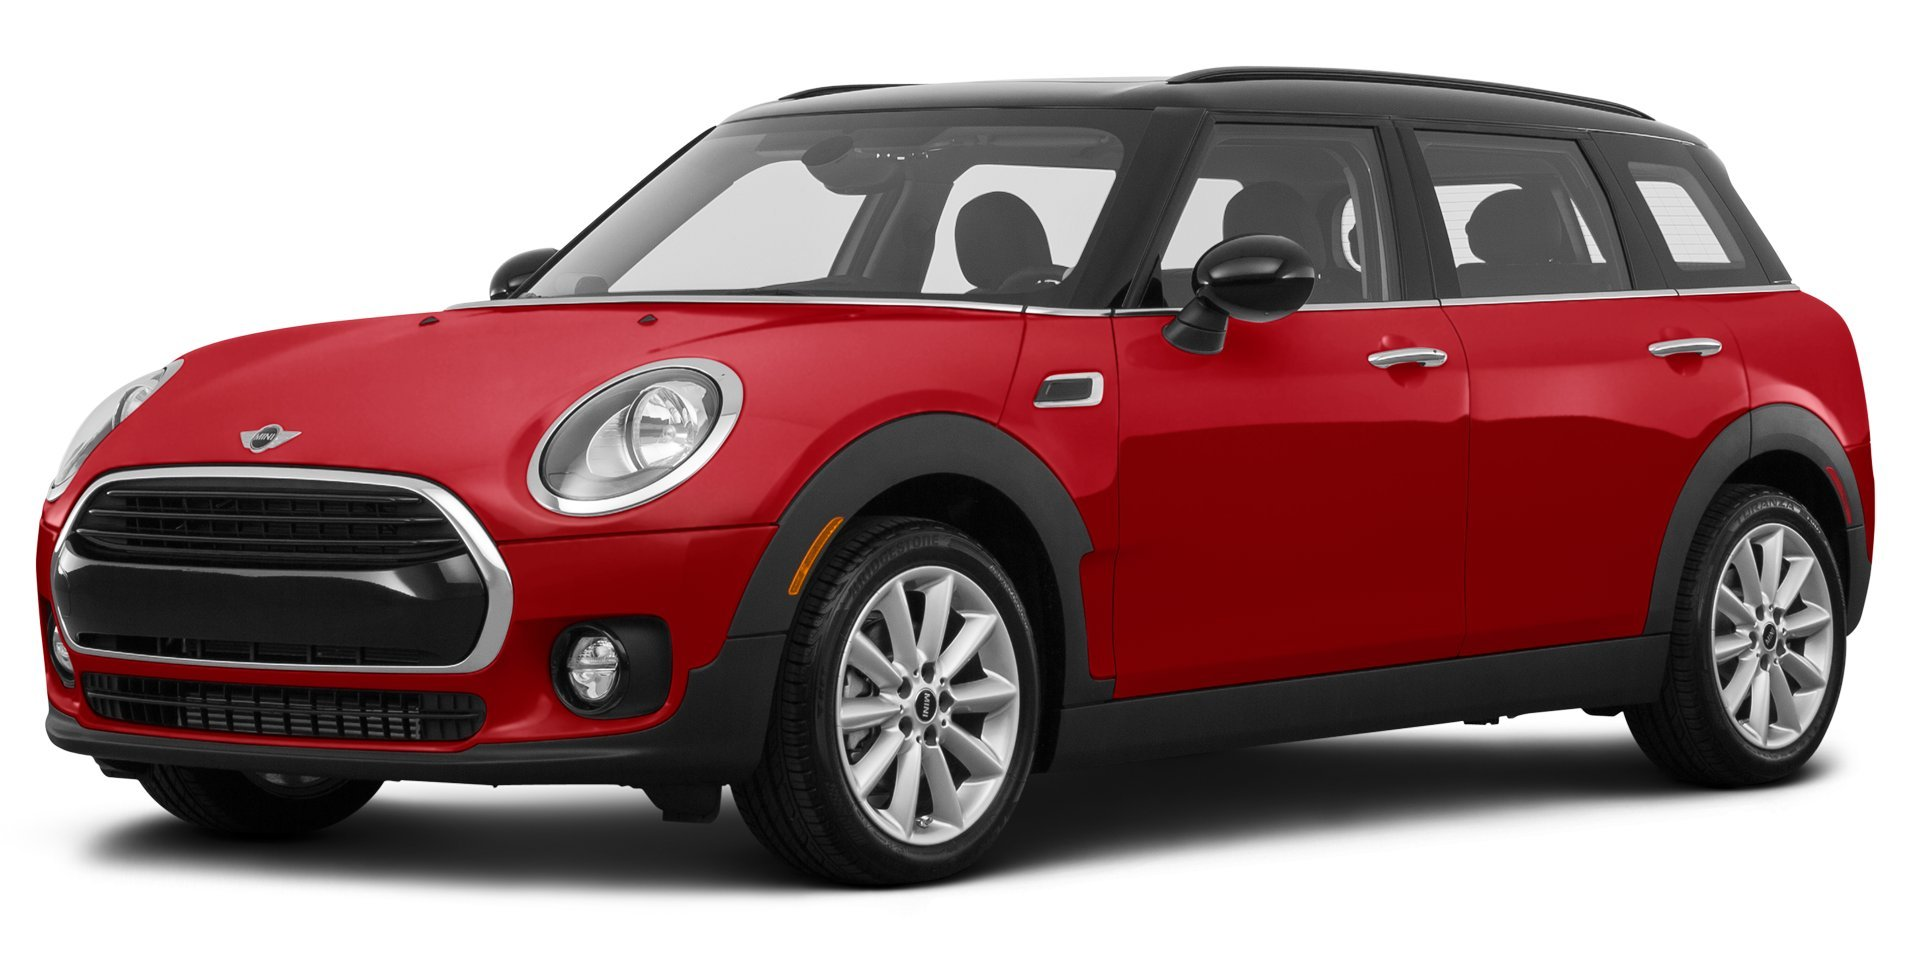 2016 mini cooper clubman reviews images and specs vehicles. Black Bedroom Furniture Sets. Home Design Ideas